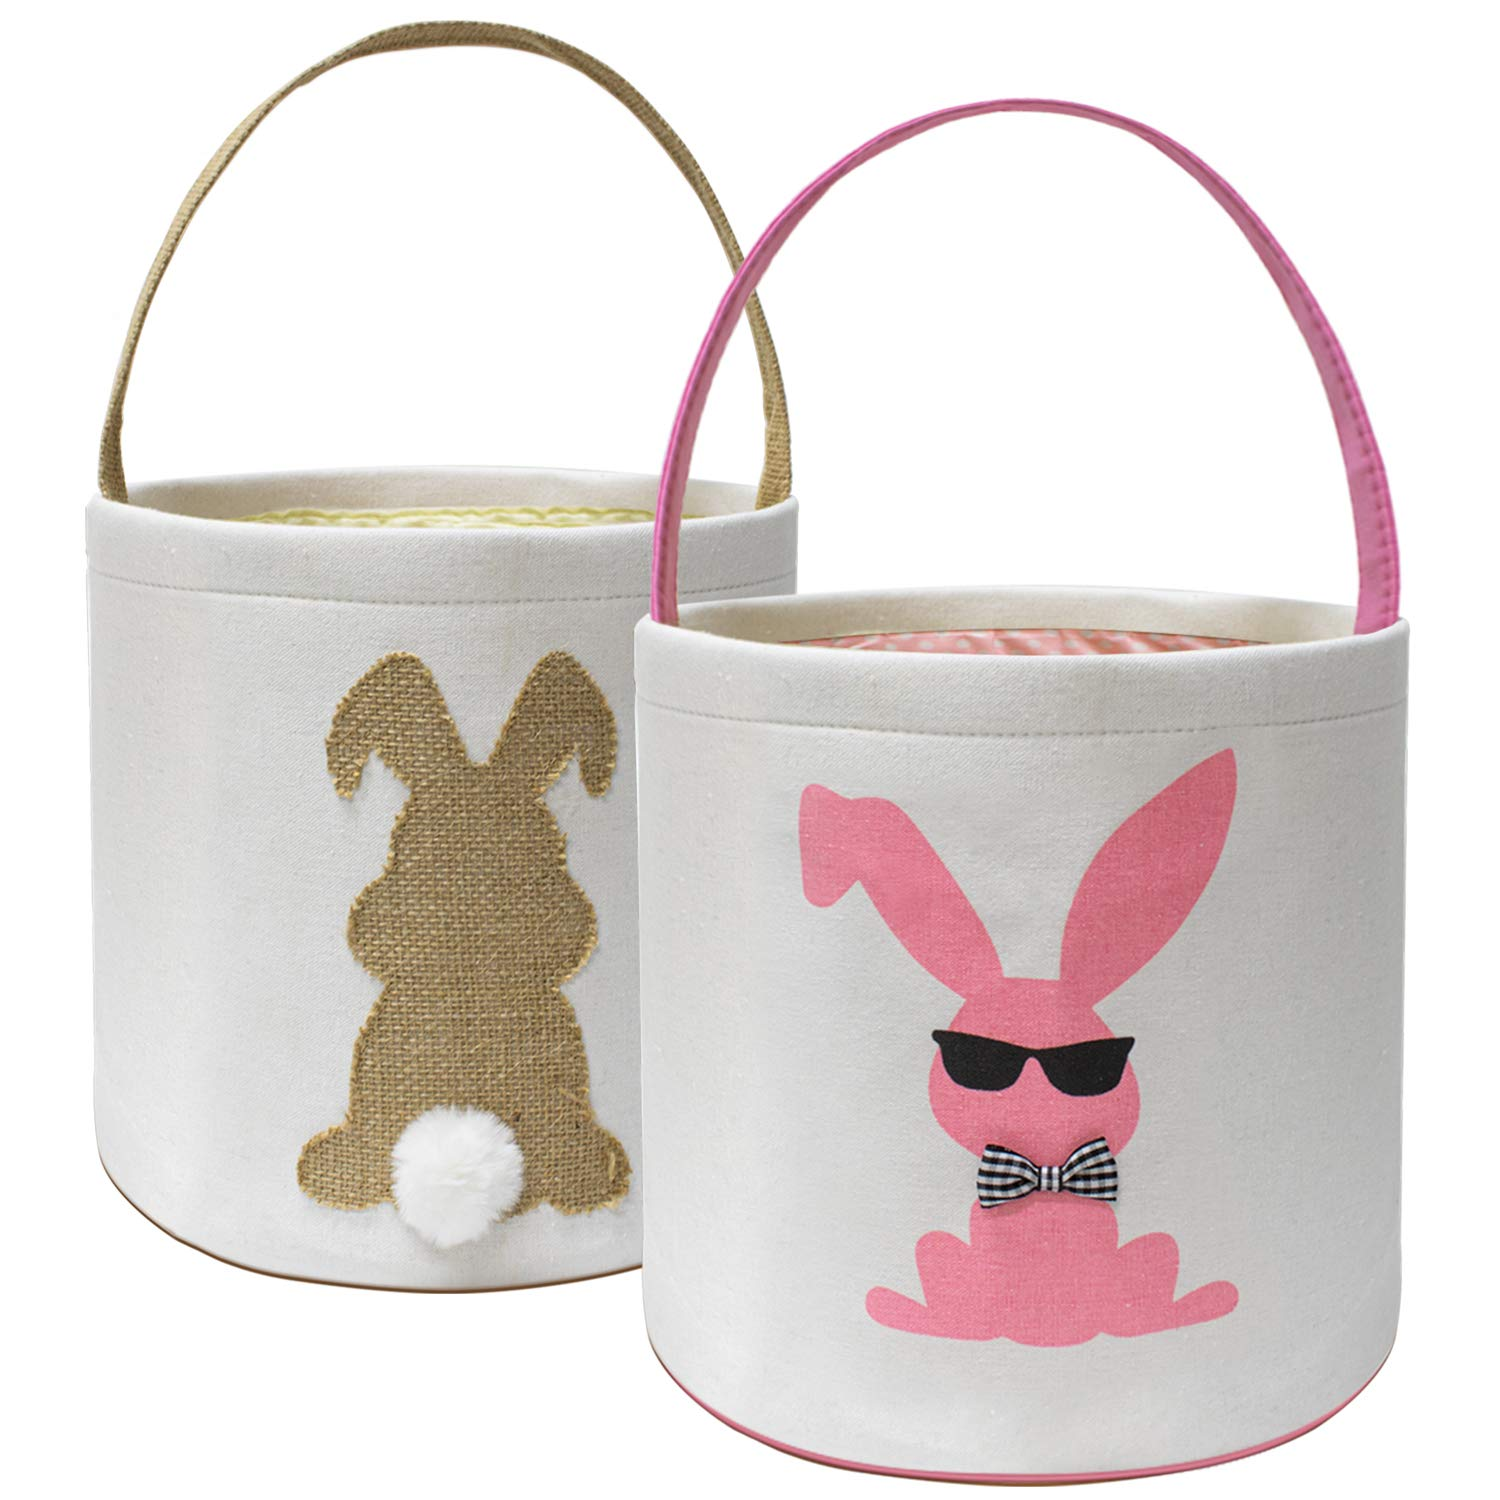 Easter Basket - Easter Bunny Baskets 2 Pack Easter Baskets for Kids with Handles,Fluffy Tails for Easter Eggs Hunt Party Celebrate Easter Decorations Gift Toys Carry Bucket Tote